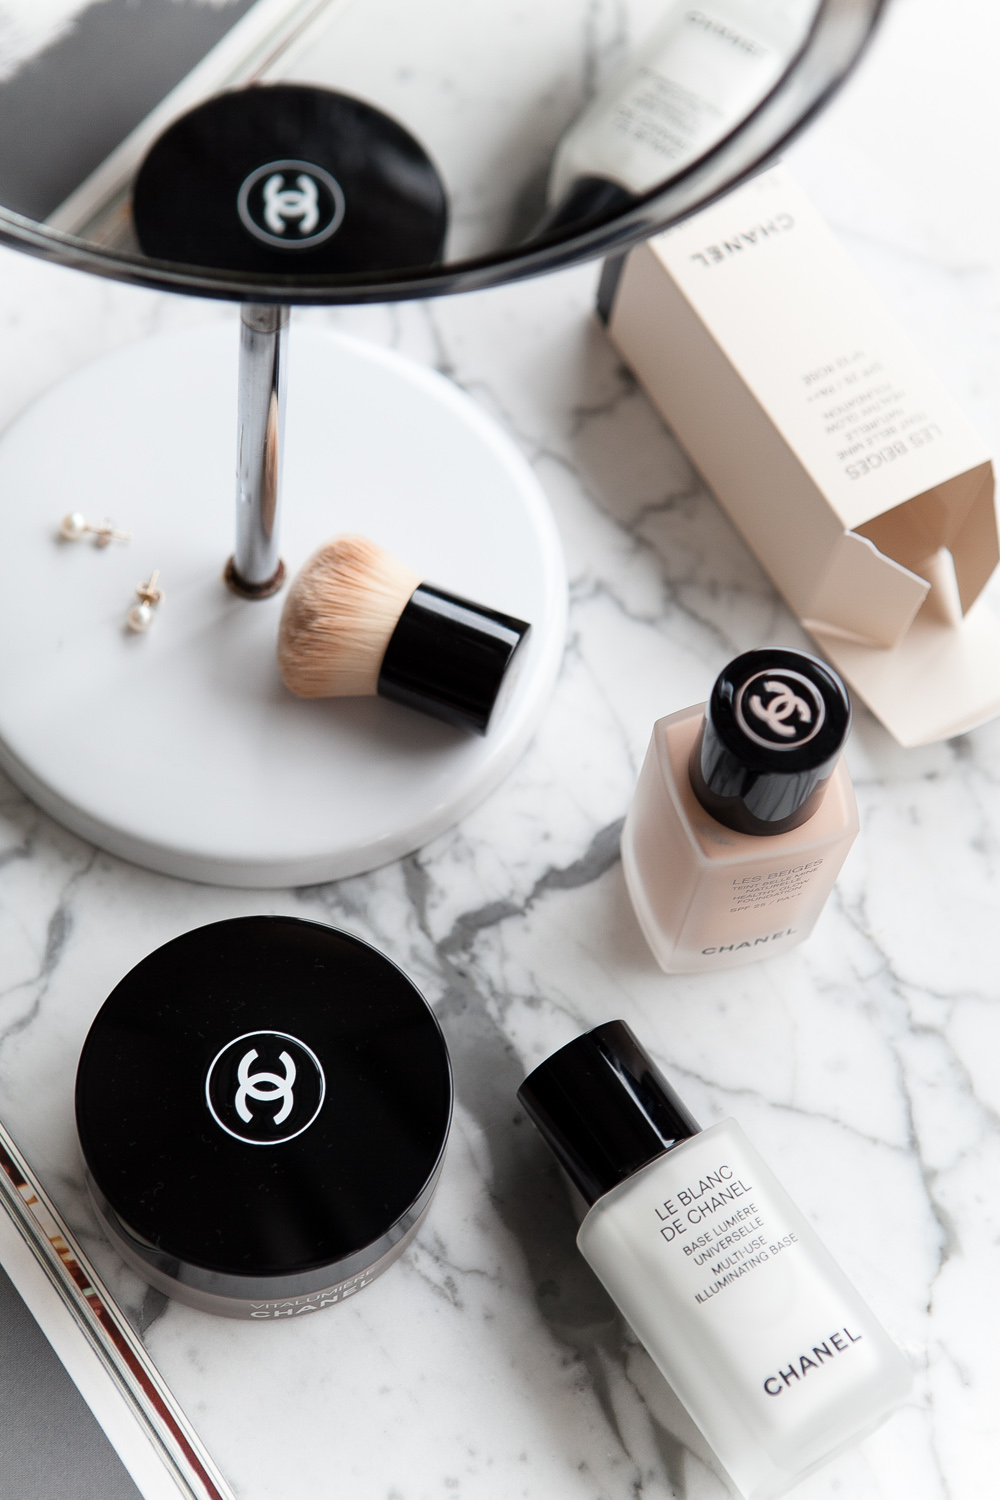 BEAUTY ESSENTIALS: THE BASE